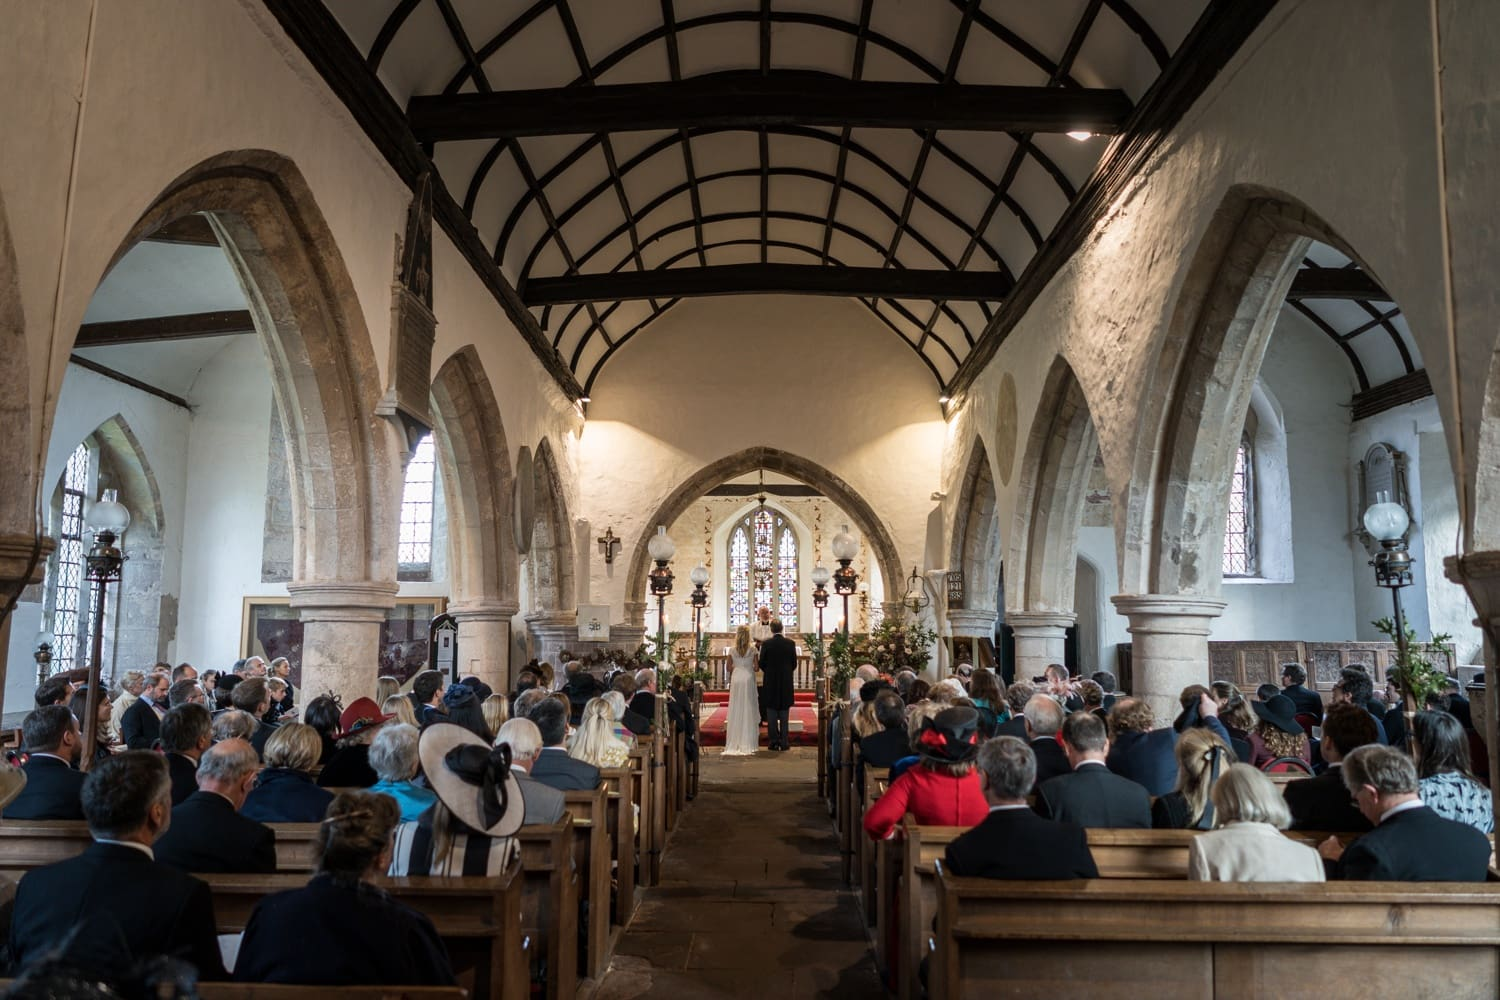 Wedding ceremony at St Brigit's Church, Skenfrith, Monmouthshire